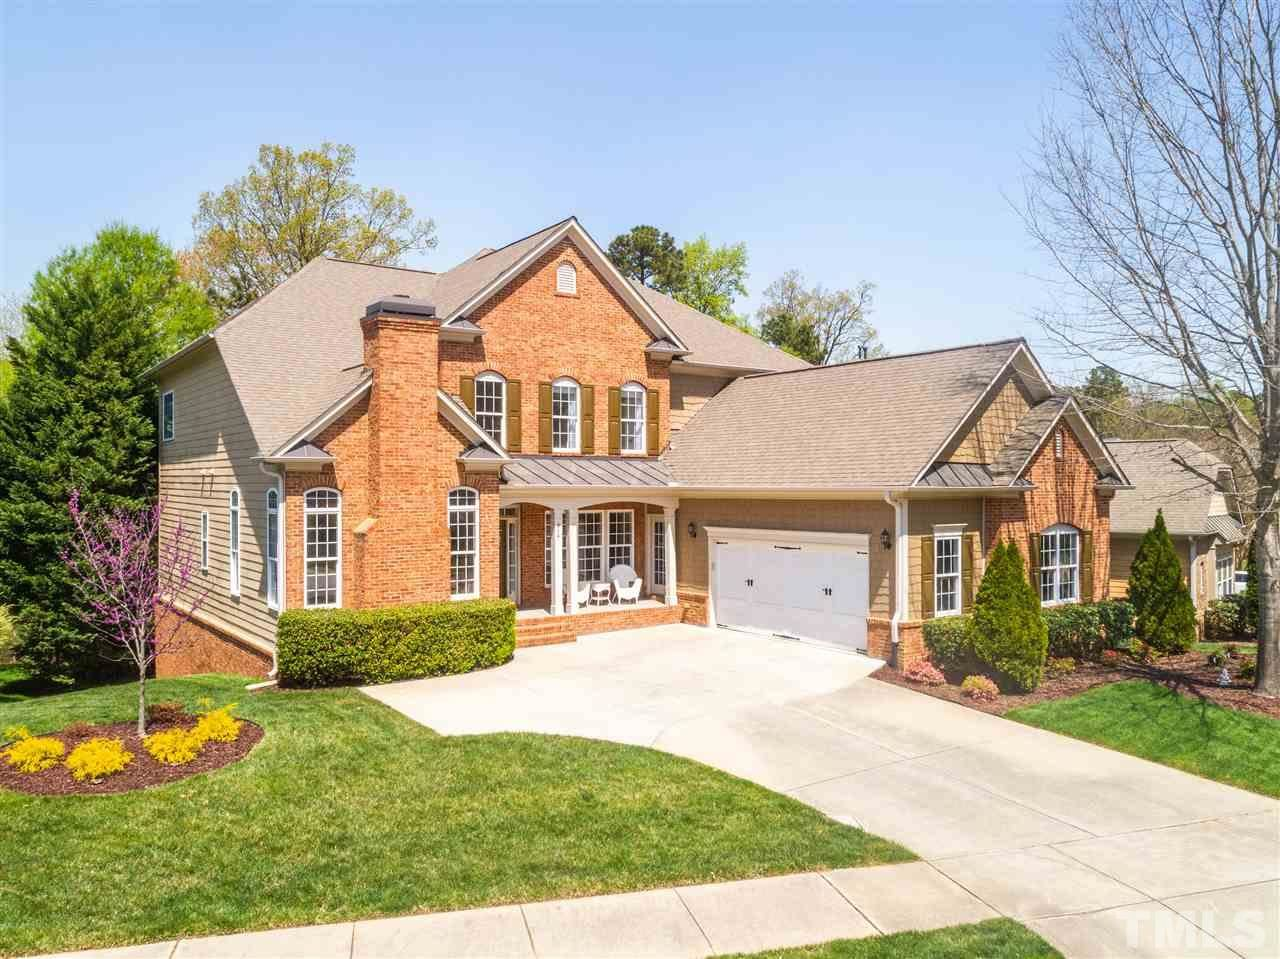 Photo of 814 Huntsworth Place, Cary, NC 27513 (MLS # 2376510)